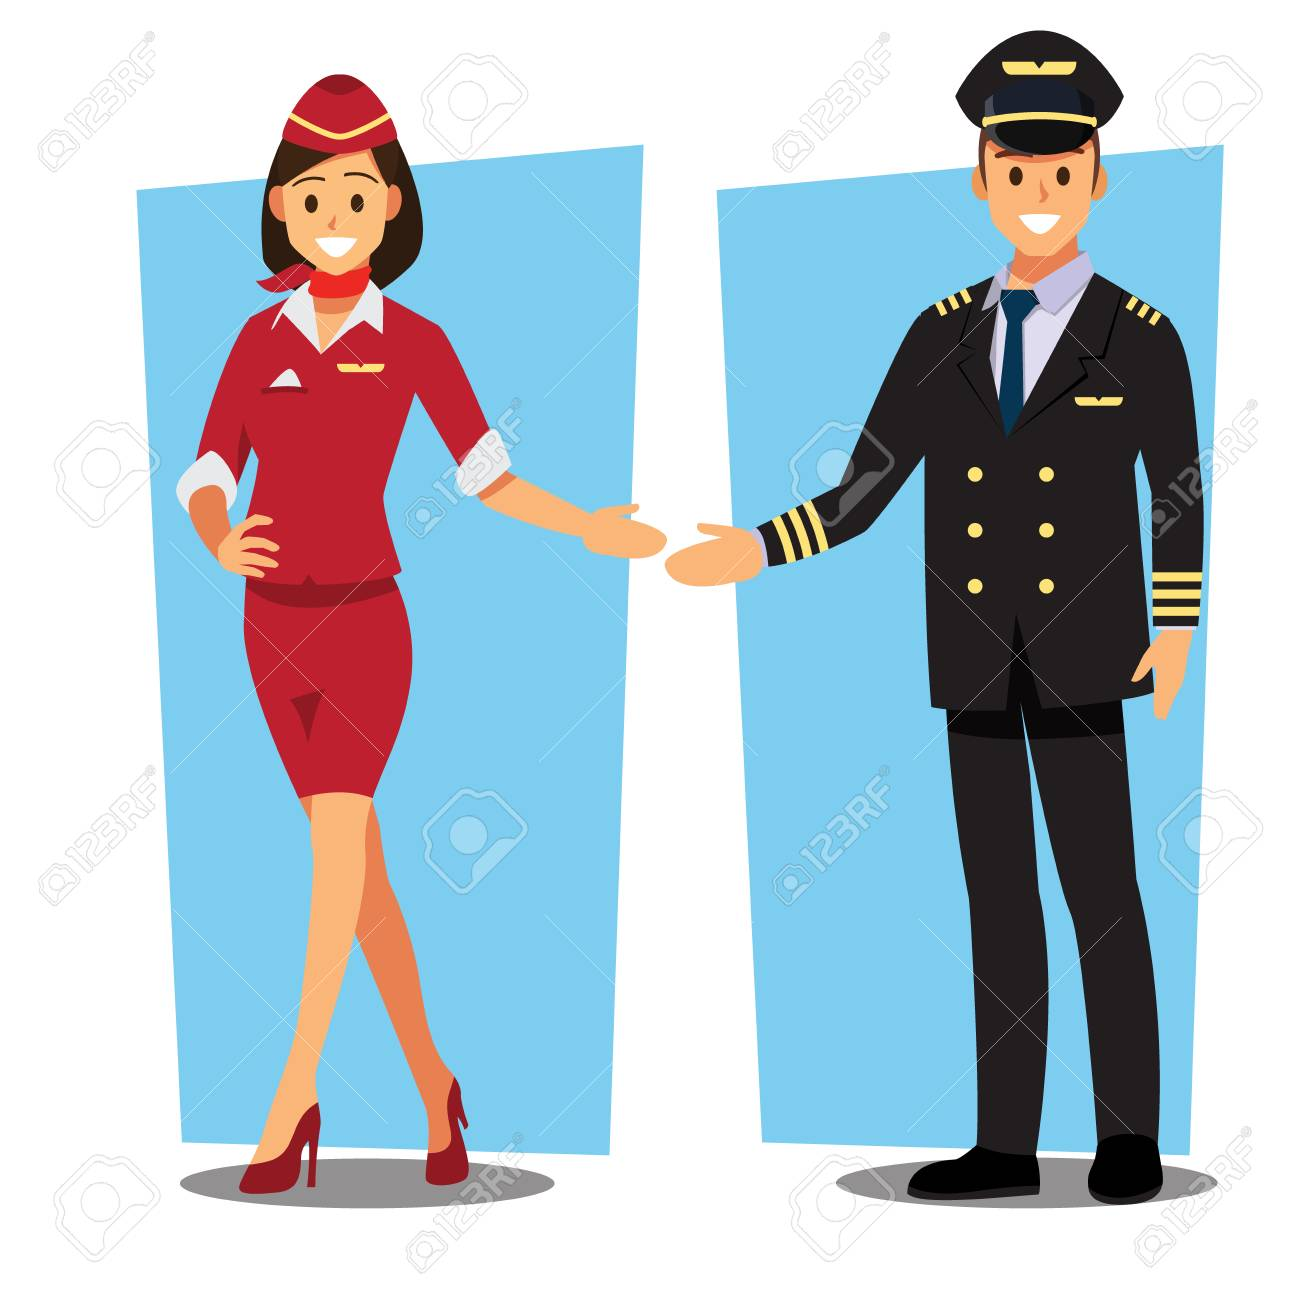 Flying attendant and Pilot character - 94707030